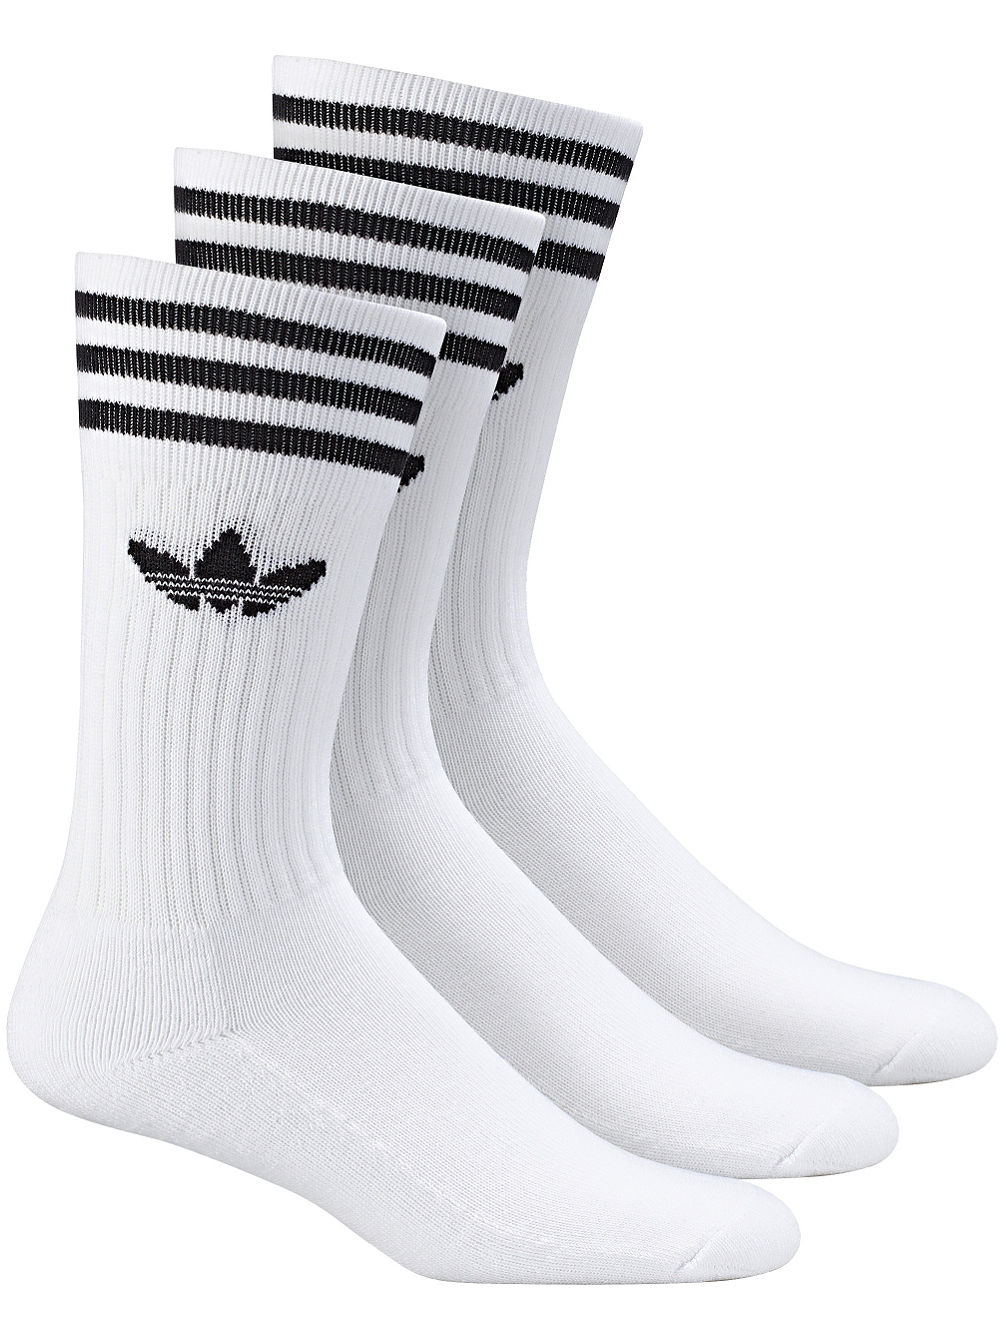 Buy adidas Originals Solid Crew Socks online at blue-tomato.com 717605f8f